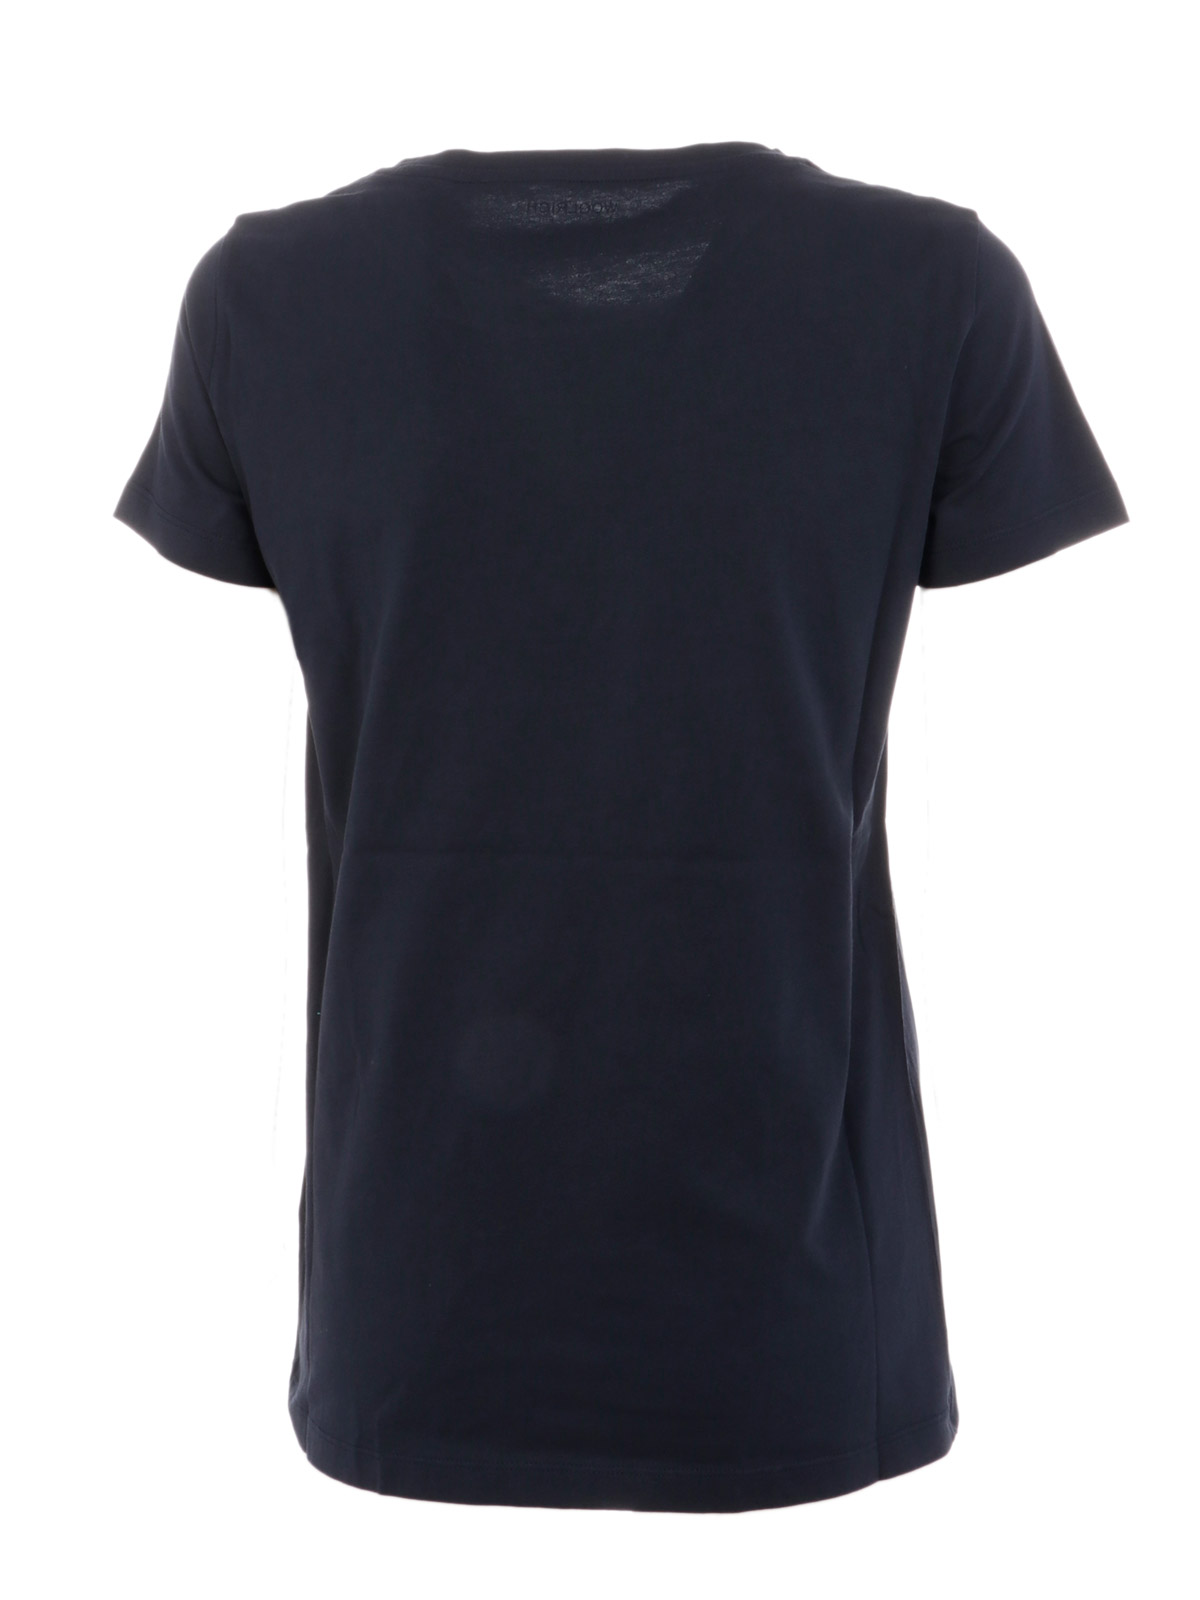 Picture of WOOLRICH | Women's Floreal Print T-shirt